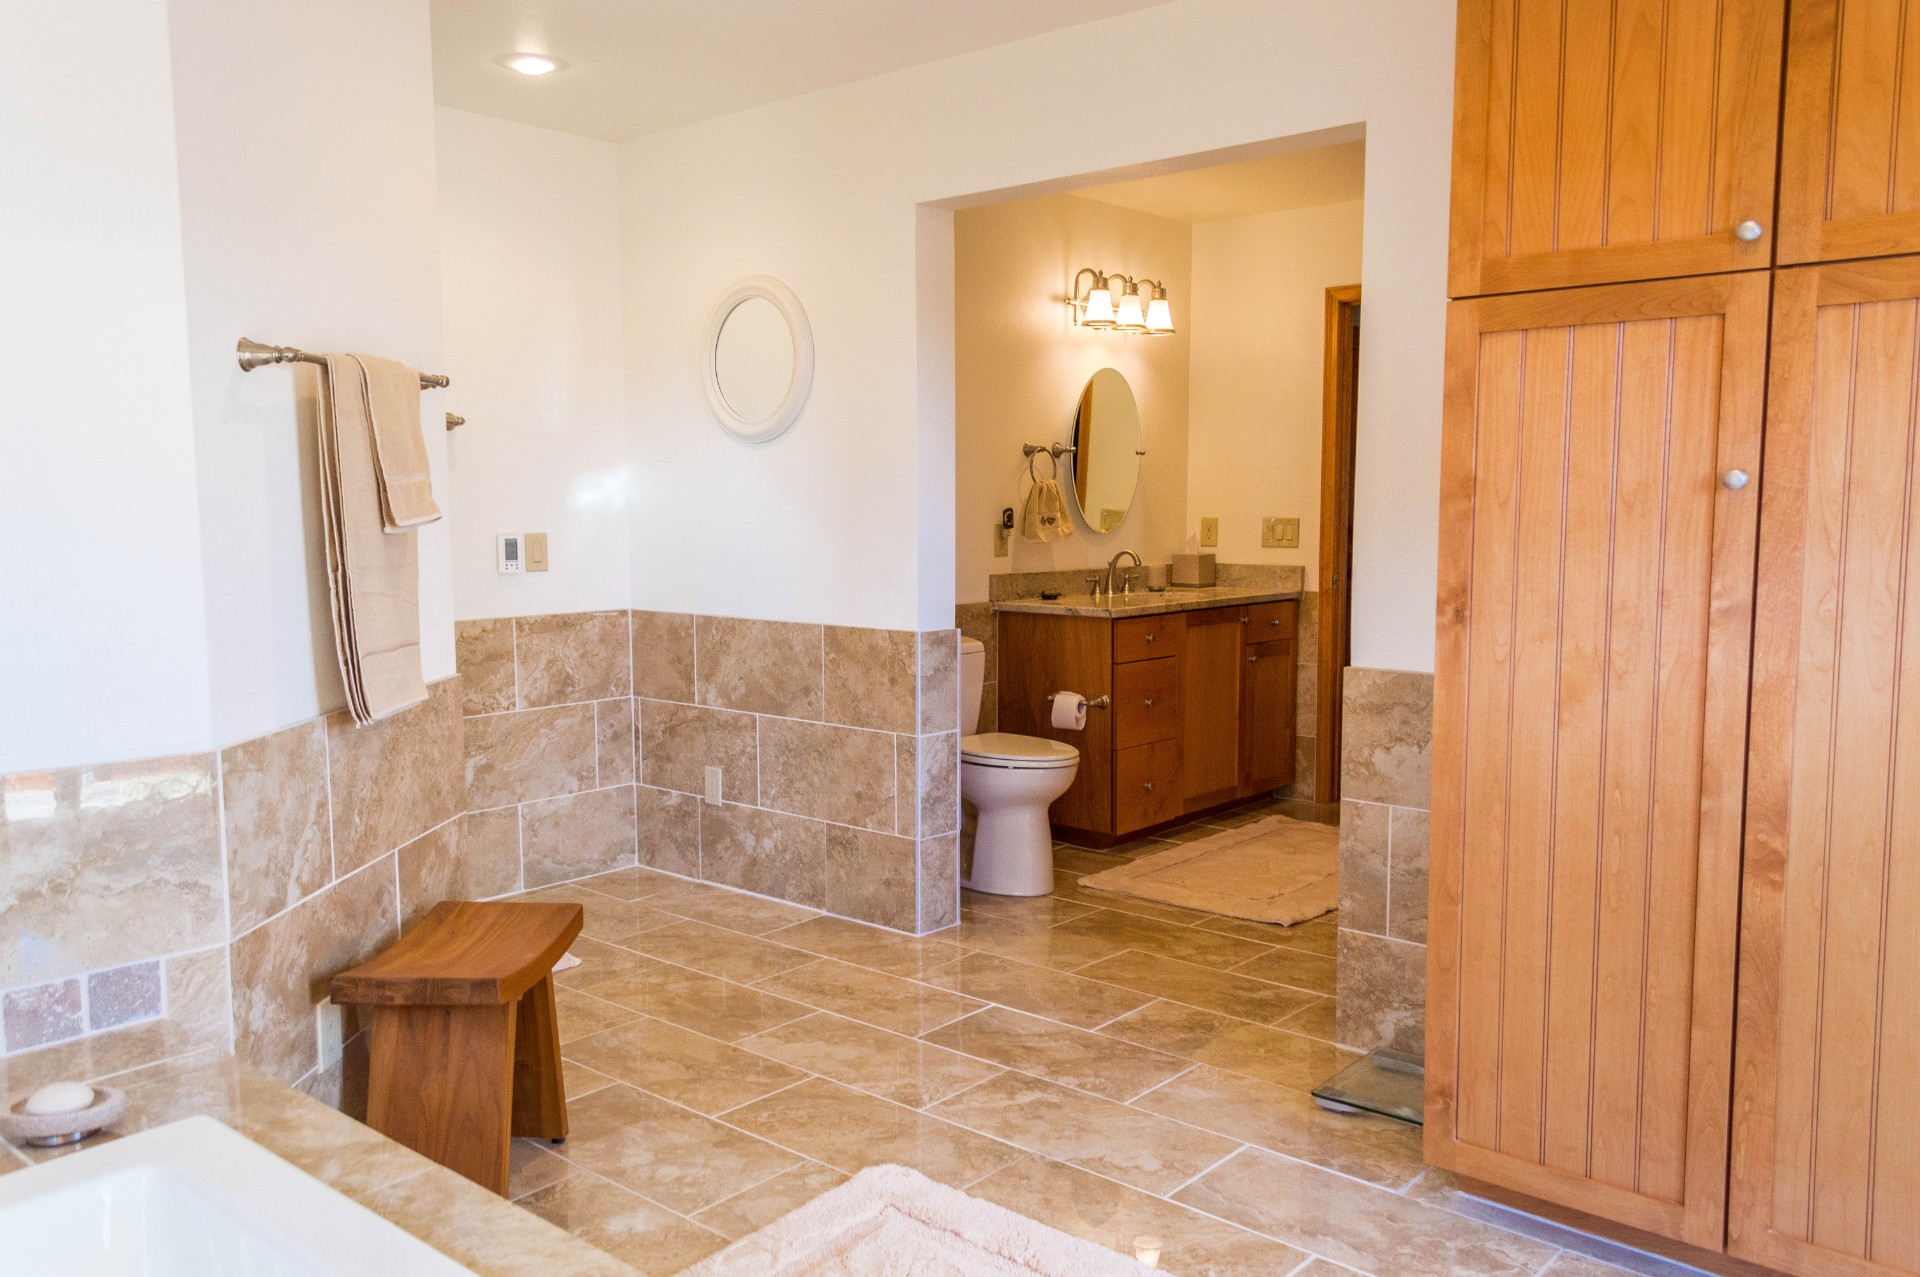 Completed custom bathroom and closet in a residential home.